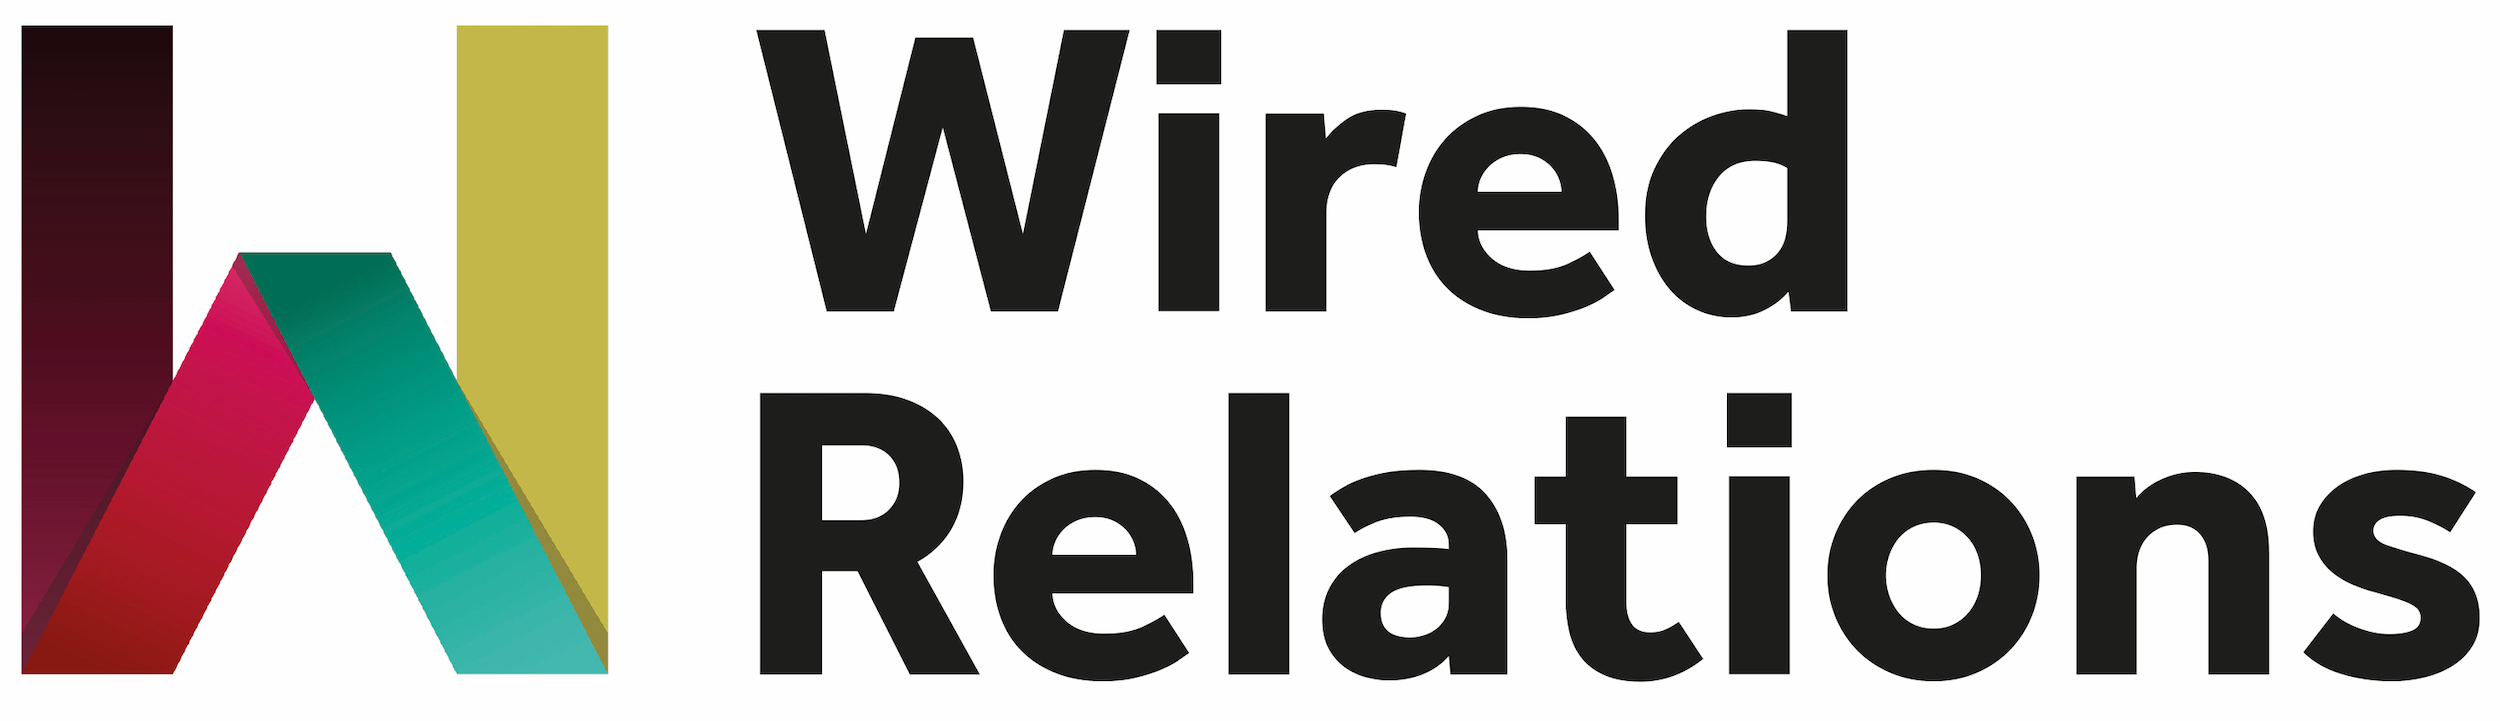 Wired Relations